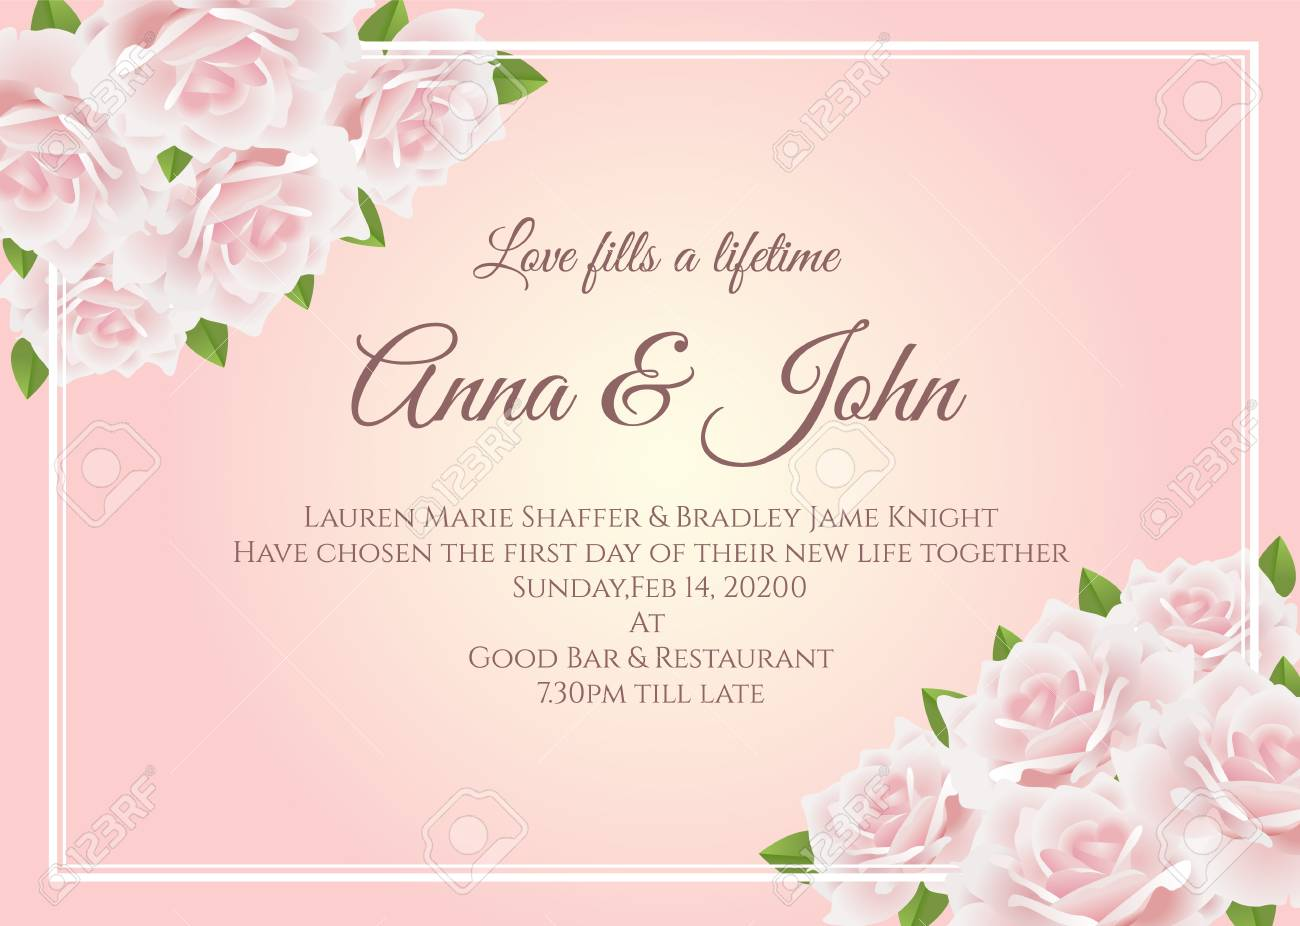 Wedding Card Soft Pink Rose Floral Frame On Yellow Pink Background